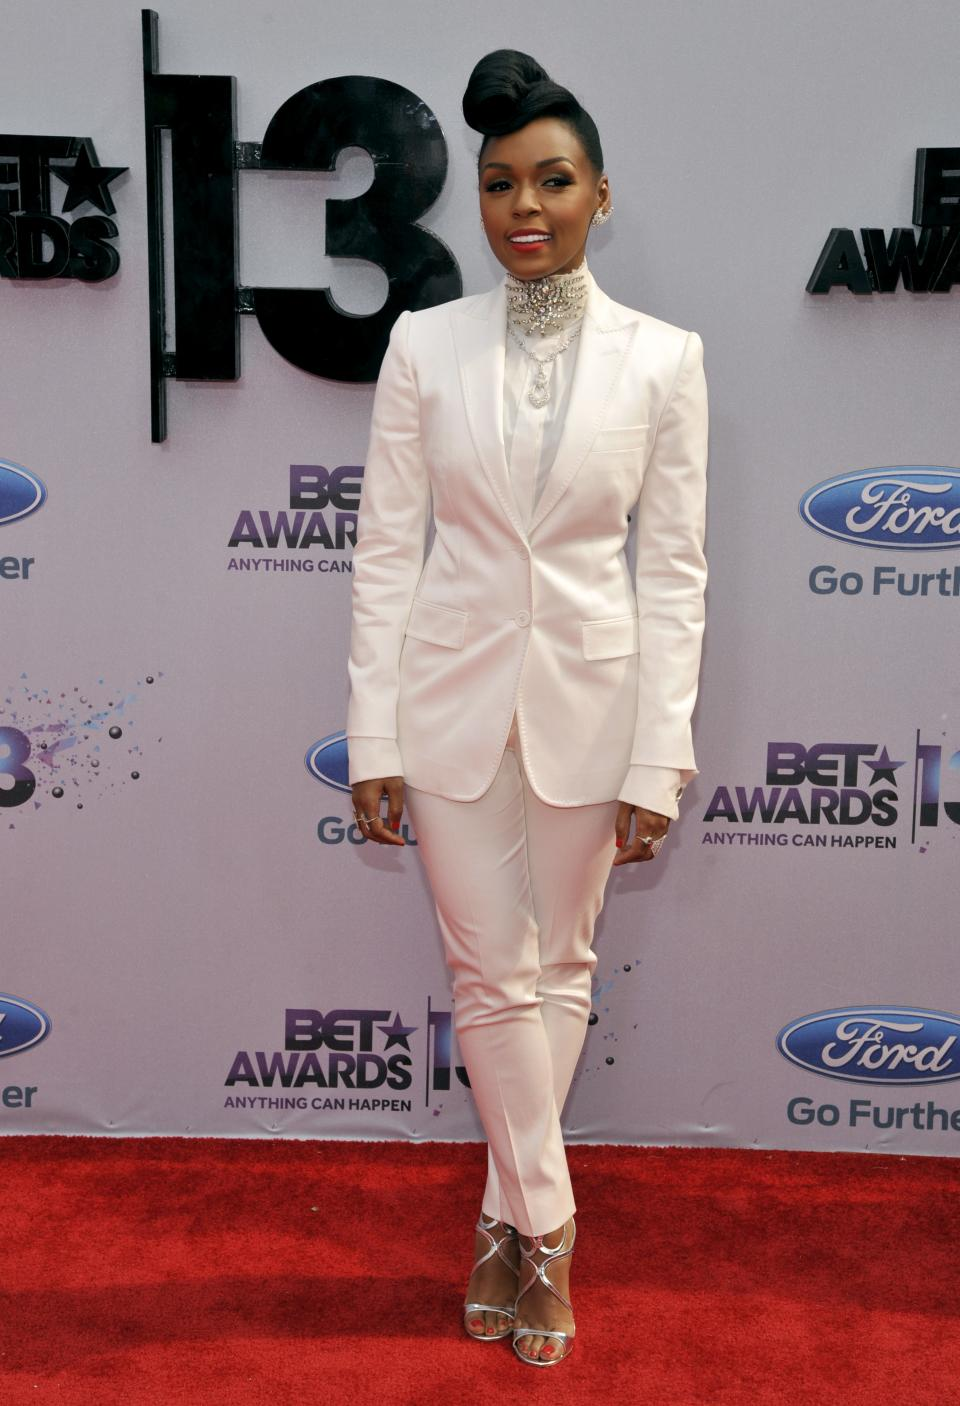 Janelle Monae arrives at the BET Awards at the Nokia Theatre on Sunday, June 30, 2013, in Los Angeles. (Photo by Chris Pizzello/Invision/AP)